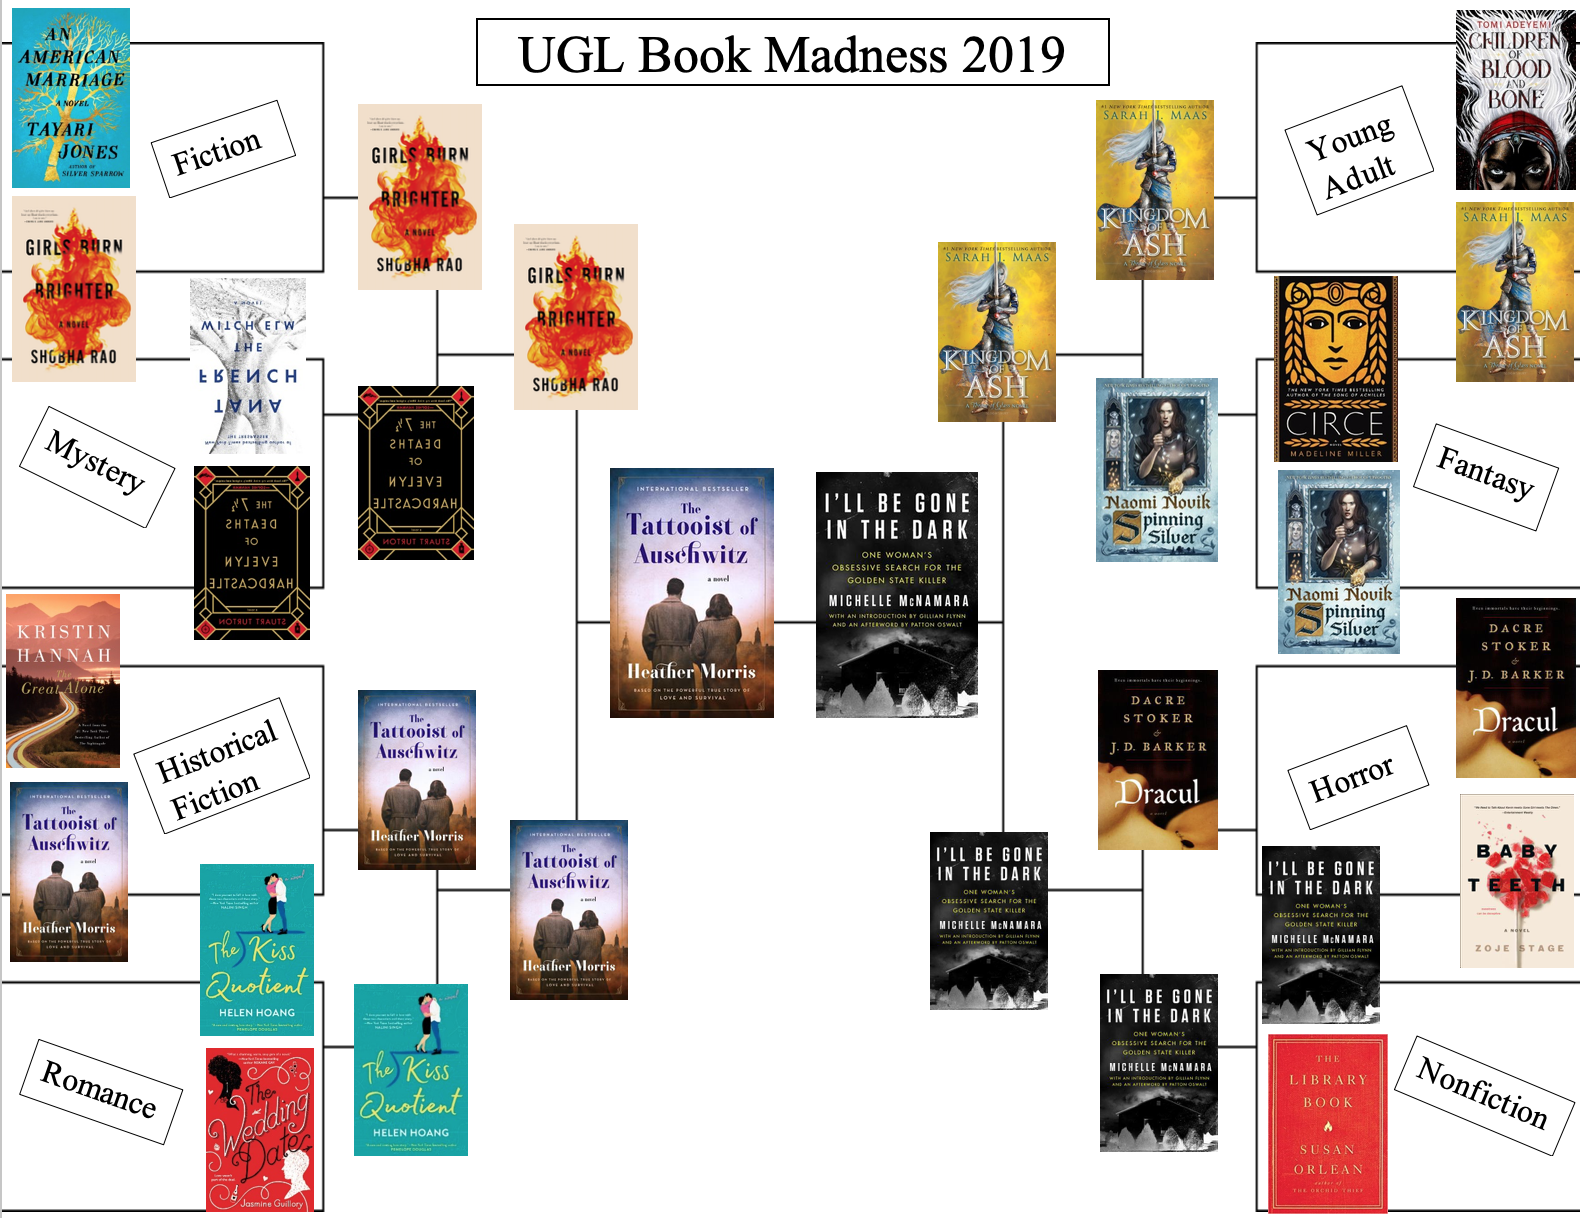 This is a book bracket that students are welcome to fill out in the spirit of 'March Madness' - it features all of the books listed below!